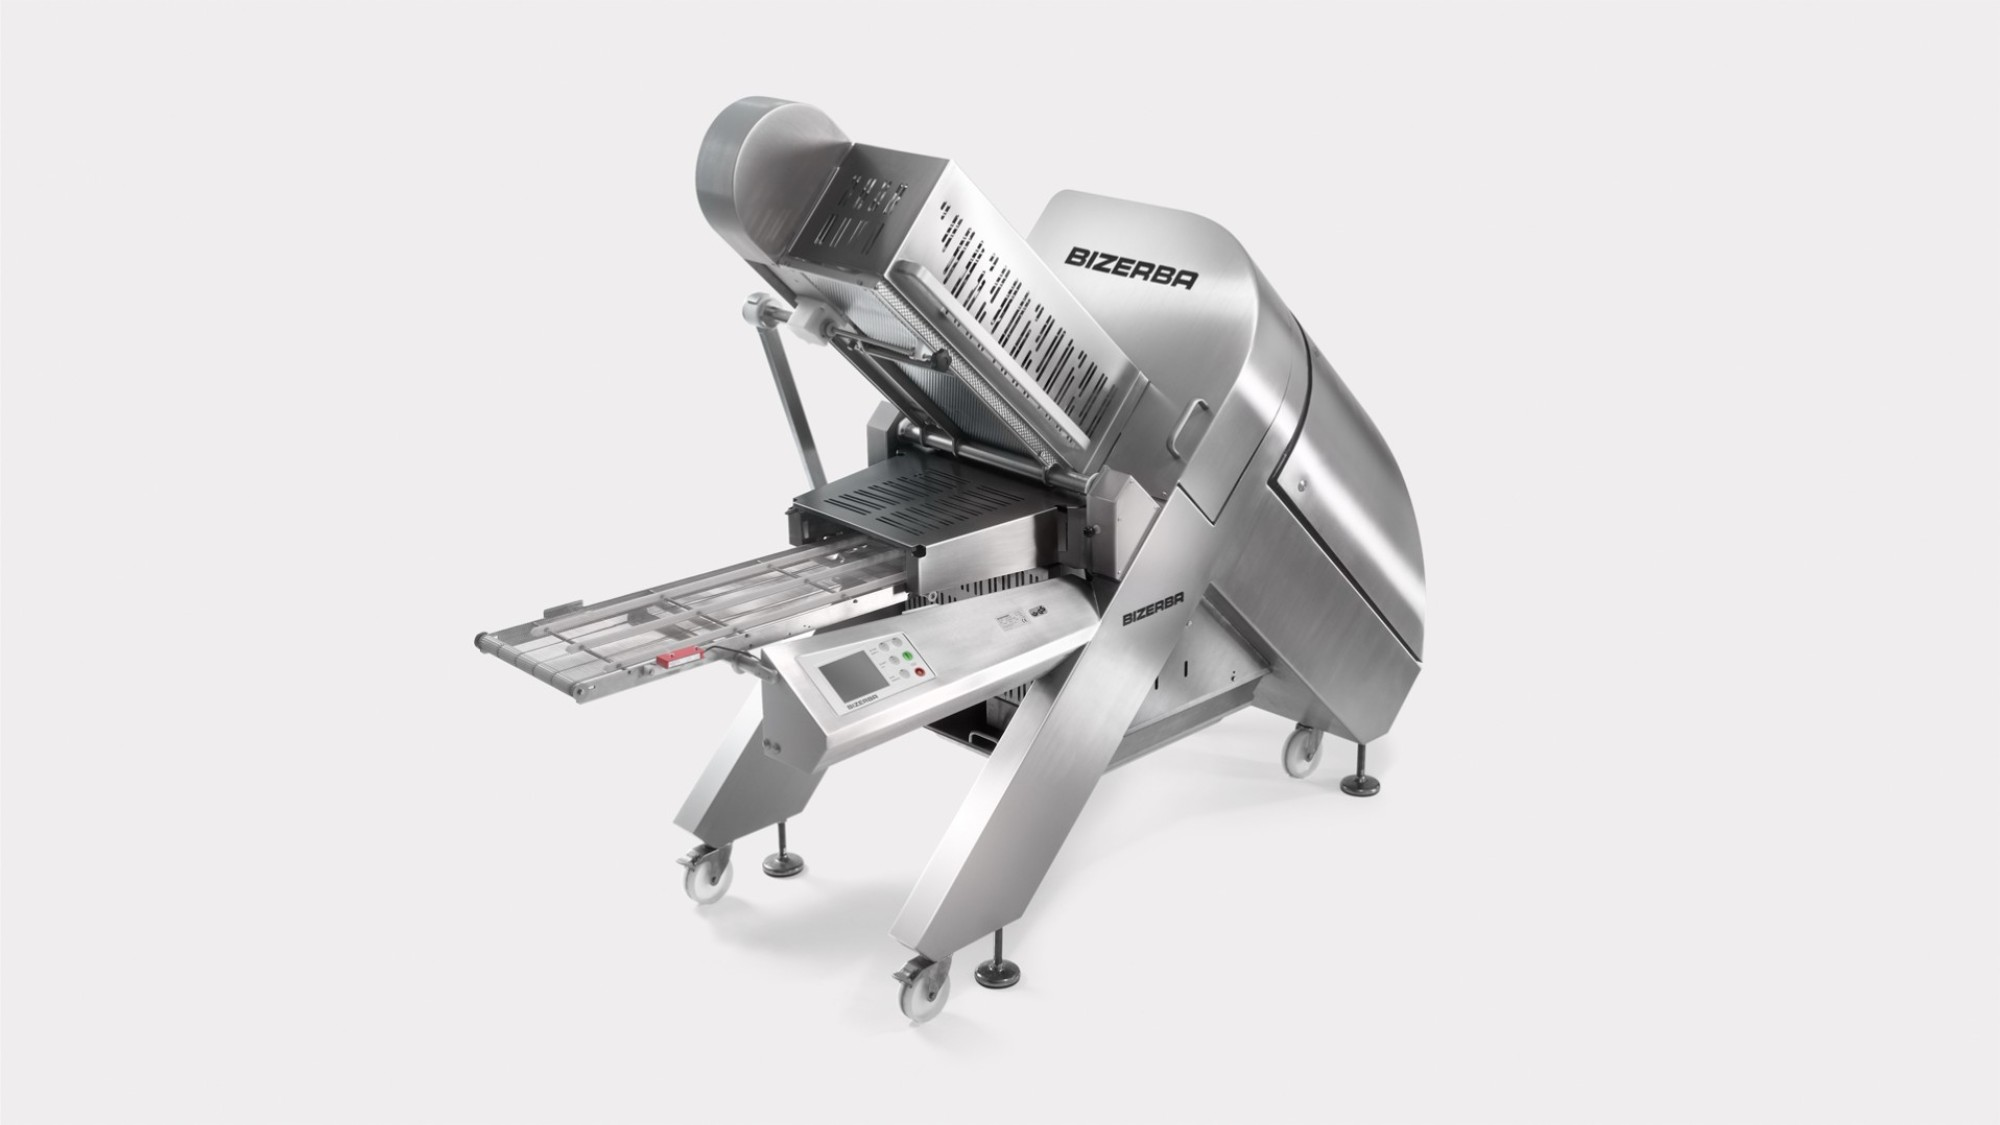 Caption: Unique in its class, Bizerba's A550 slicer provides integrated weighing technology for portion and single-slice weighing.